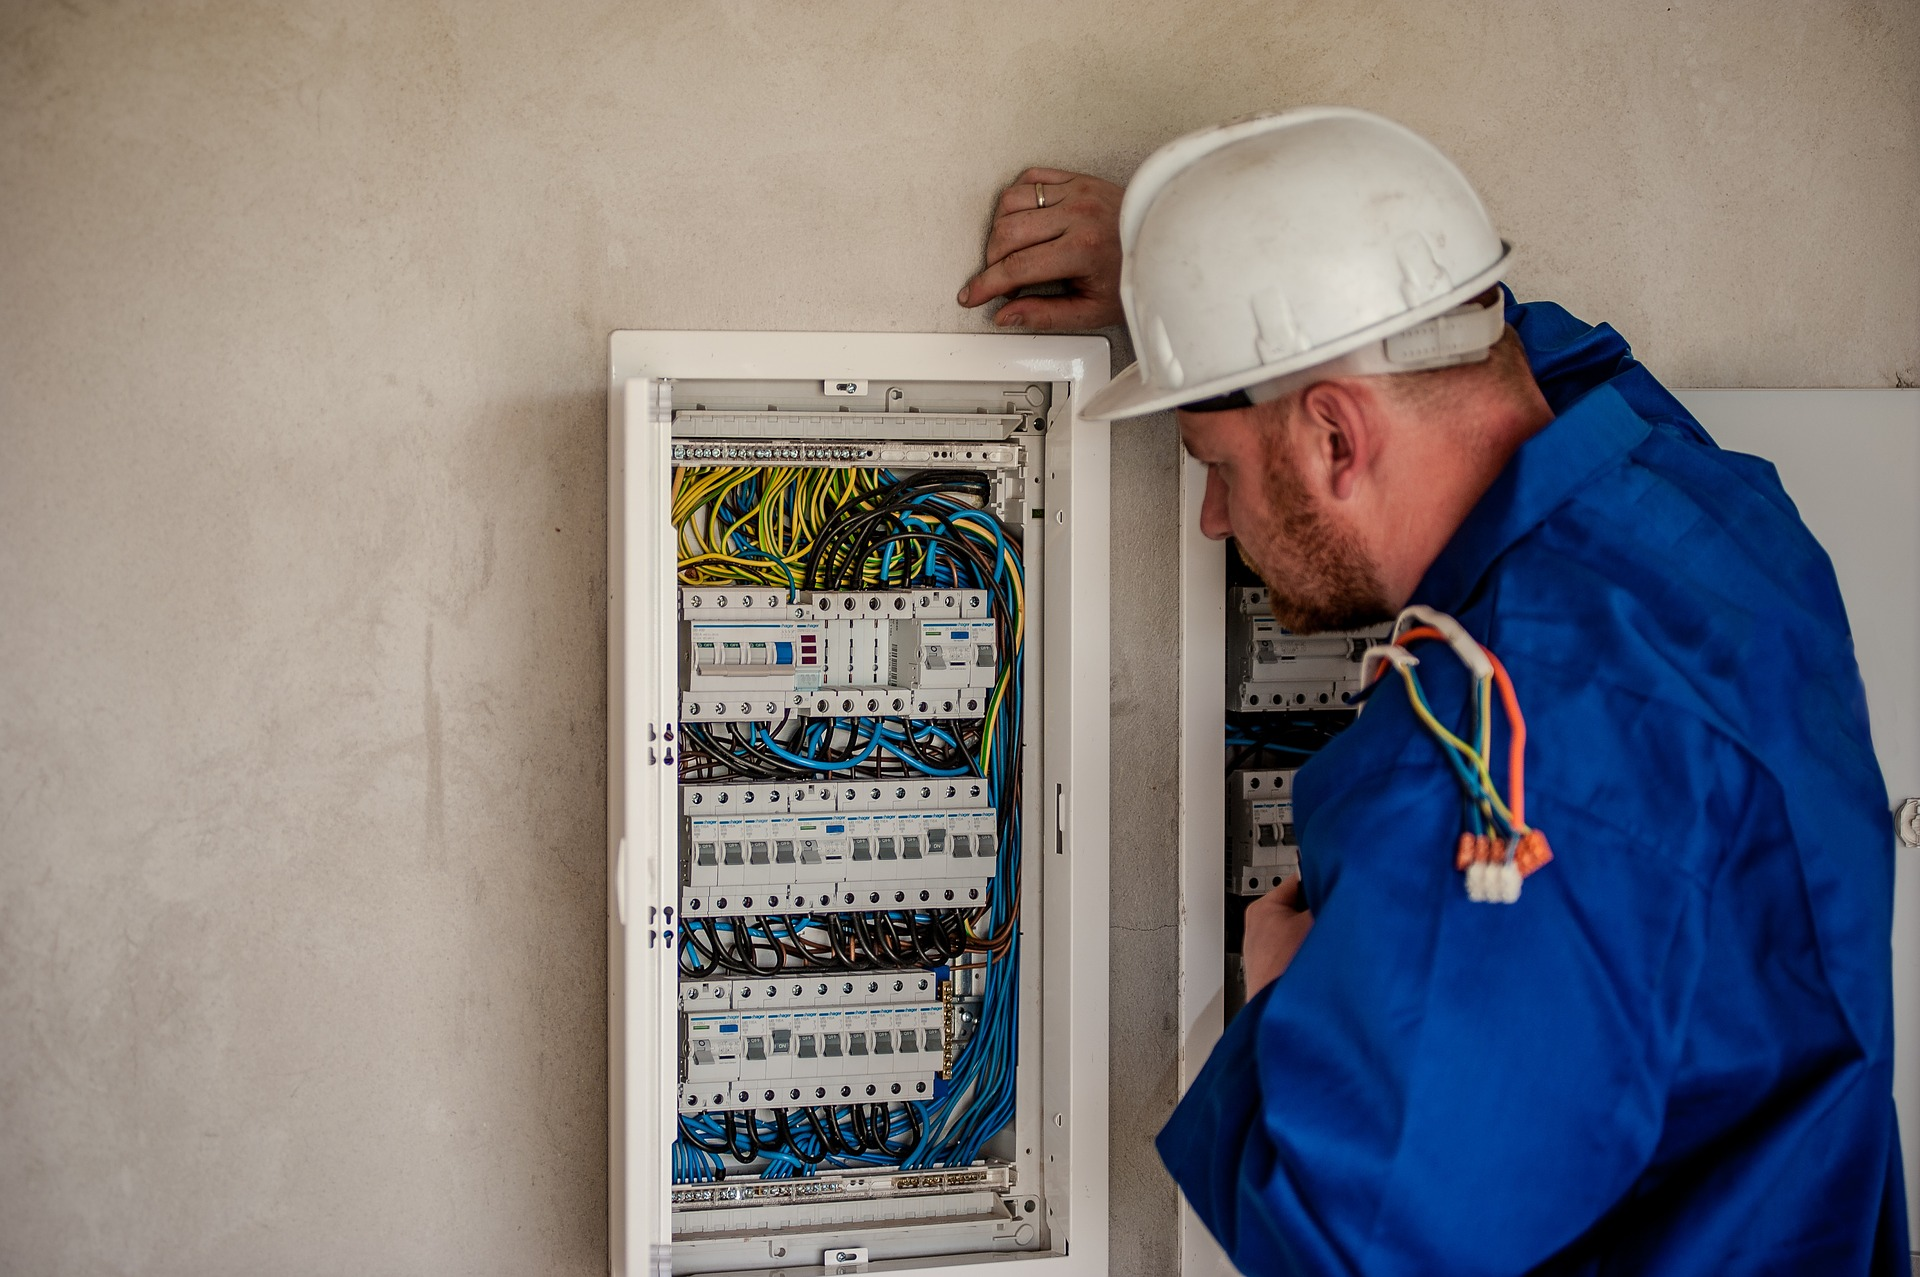 Services - Electrician working on a power box